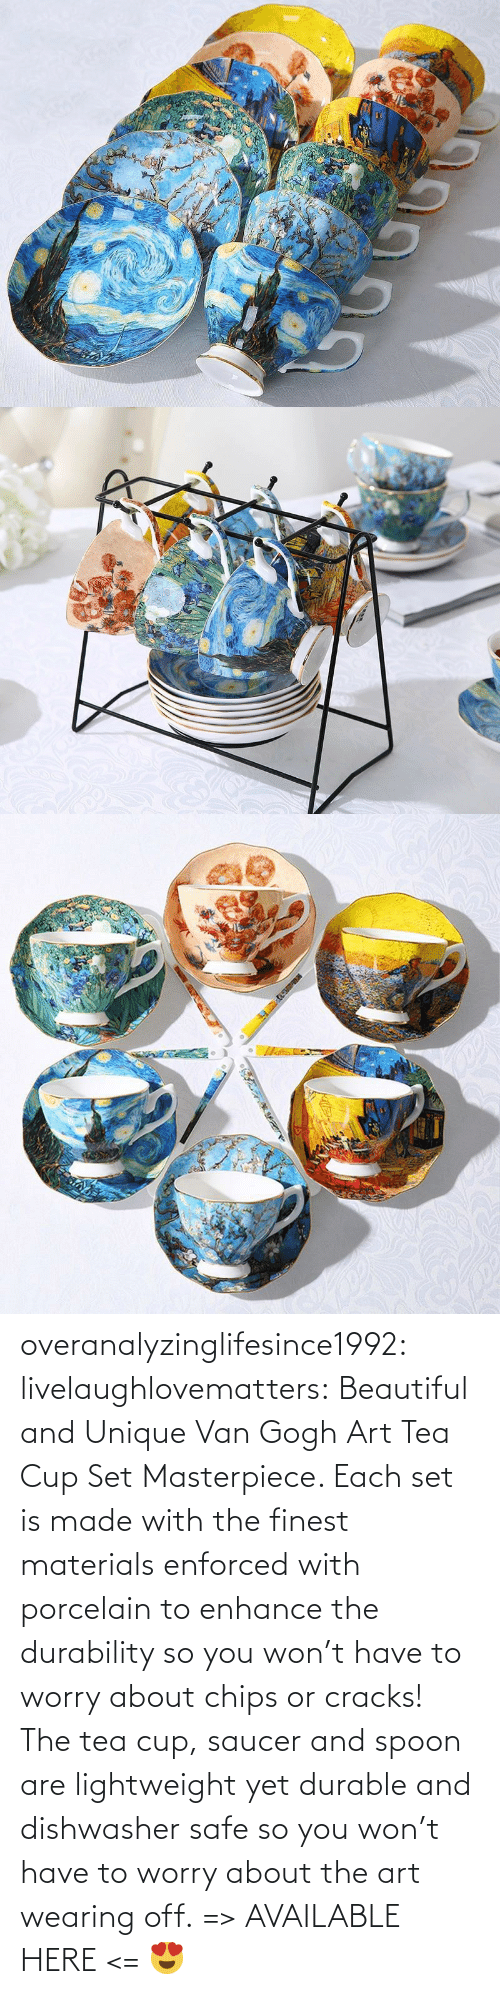 art: overanalyzinglifesince1992: livelaughlovematters:  Beautiful and Unique Van Gogh Art Tea Cup Set Masterpiece. Each set is made with the finest materials enforced with porcelain to enhance the durability so you won't have to worry about chips or cracks! The tea cup, saucer and spoon are lightweight yet durable and dishwasher safe so you won't have to worry about the art wearing off. => AVAILABLE HERE <=    😍